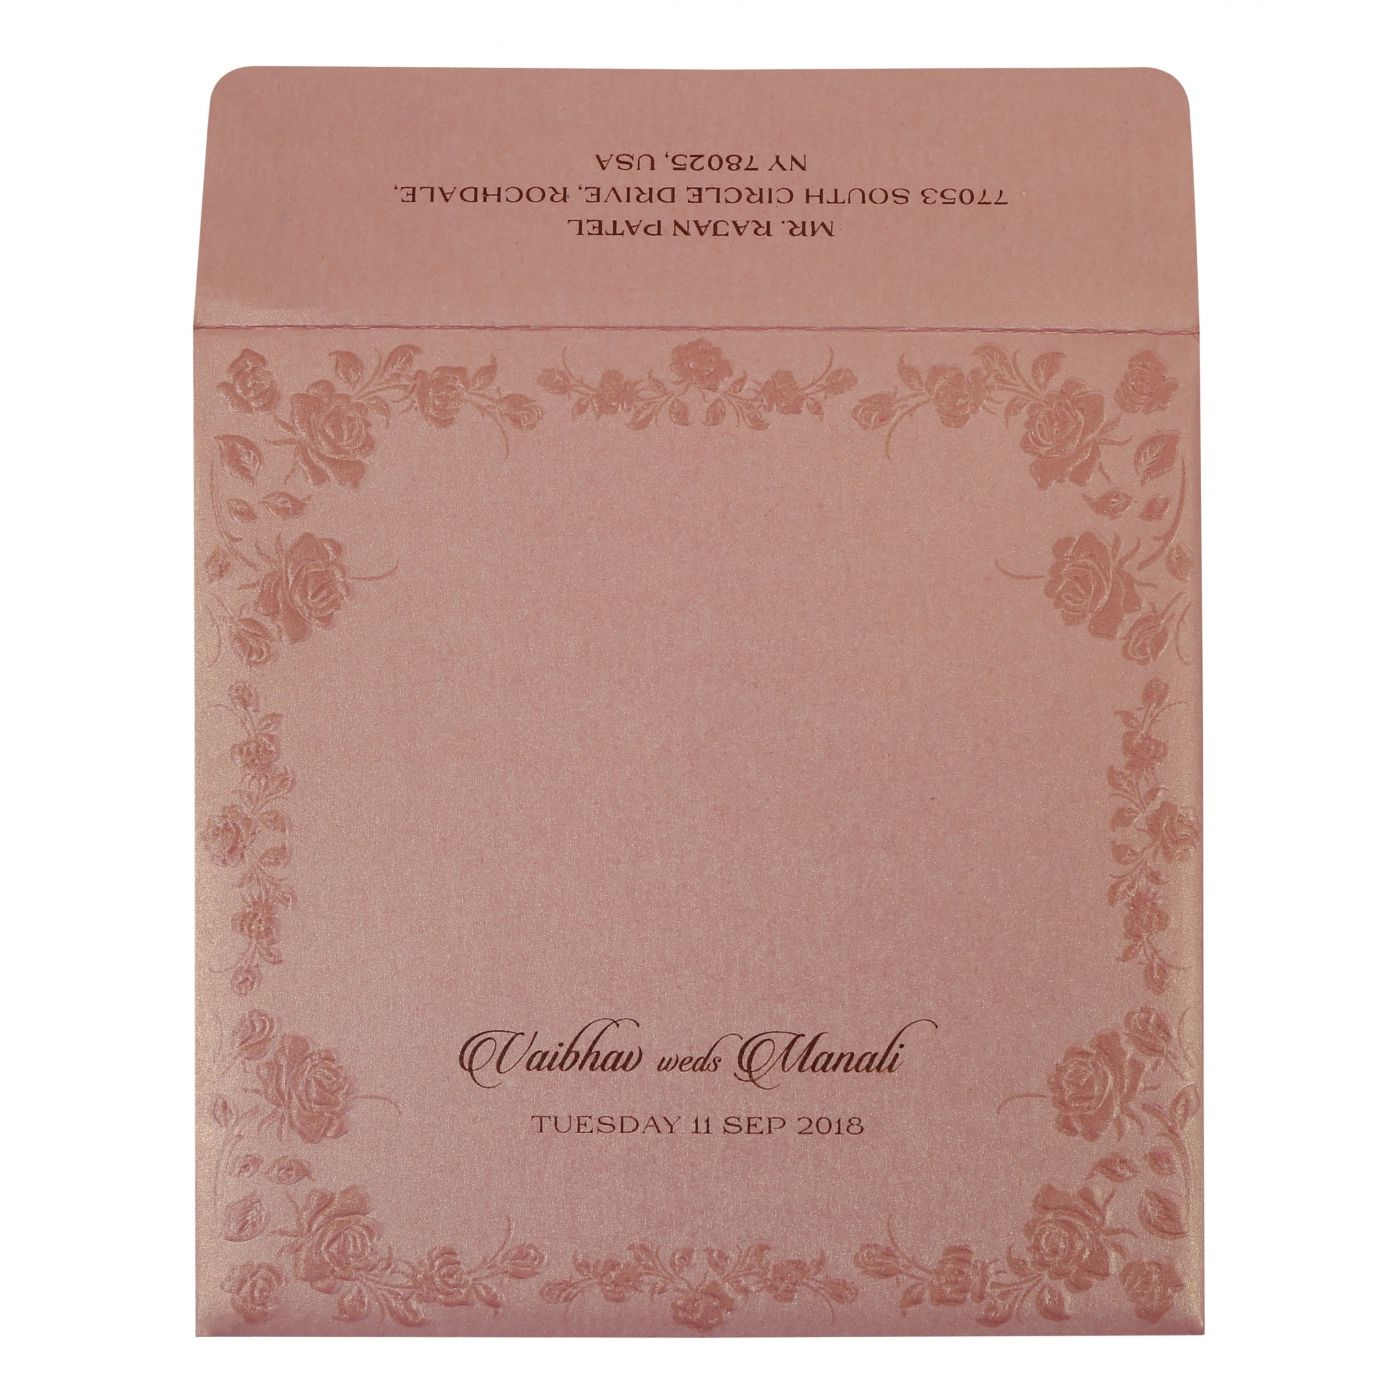 BABY PINK SHIMMERY FLORAL THEMED - FOIL STAMPED WEDDING INVITATION : CI-1787 - IndianWeddingCards